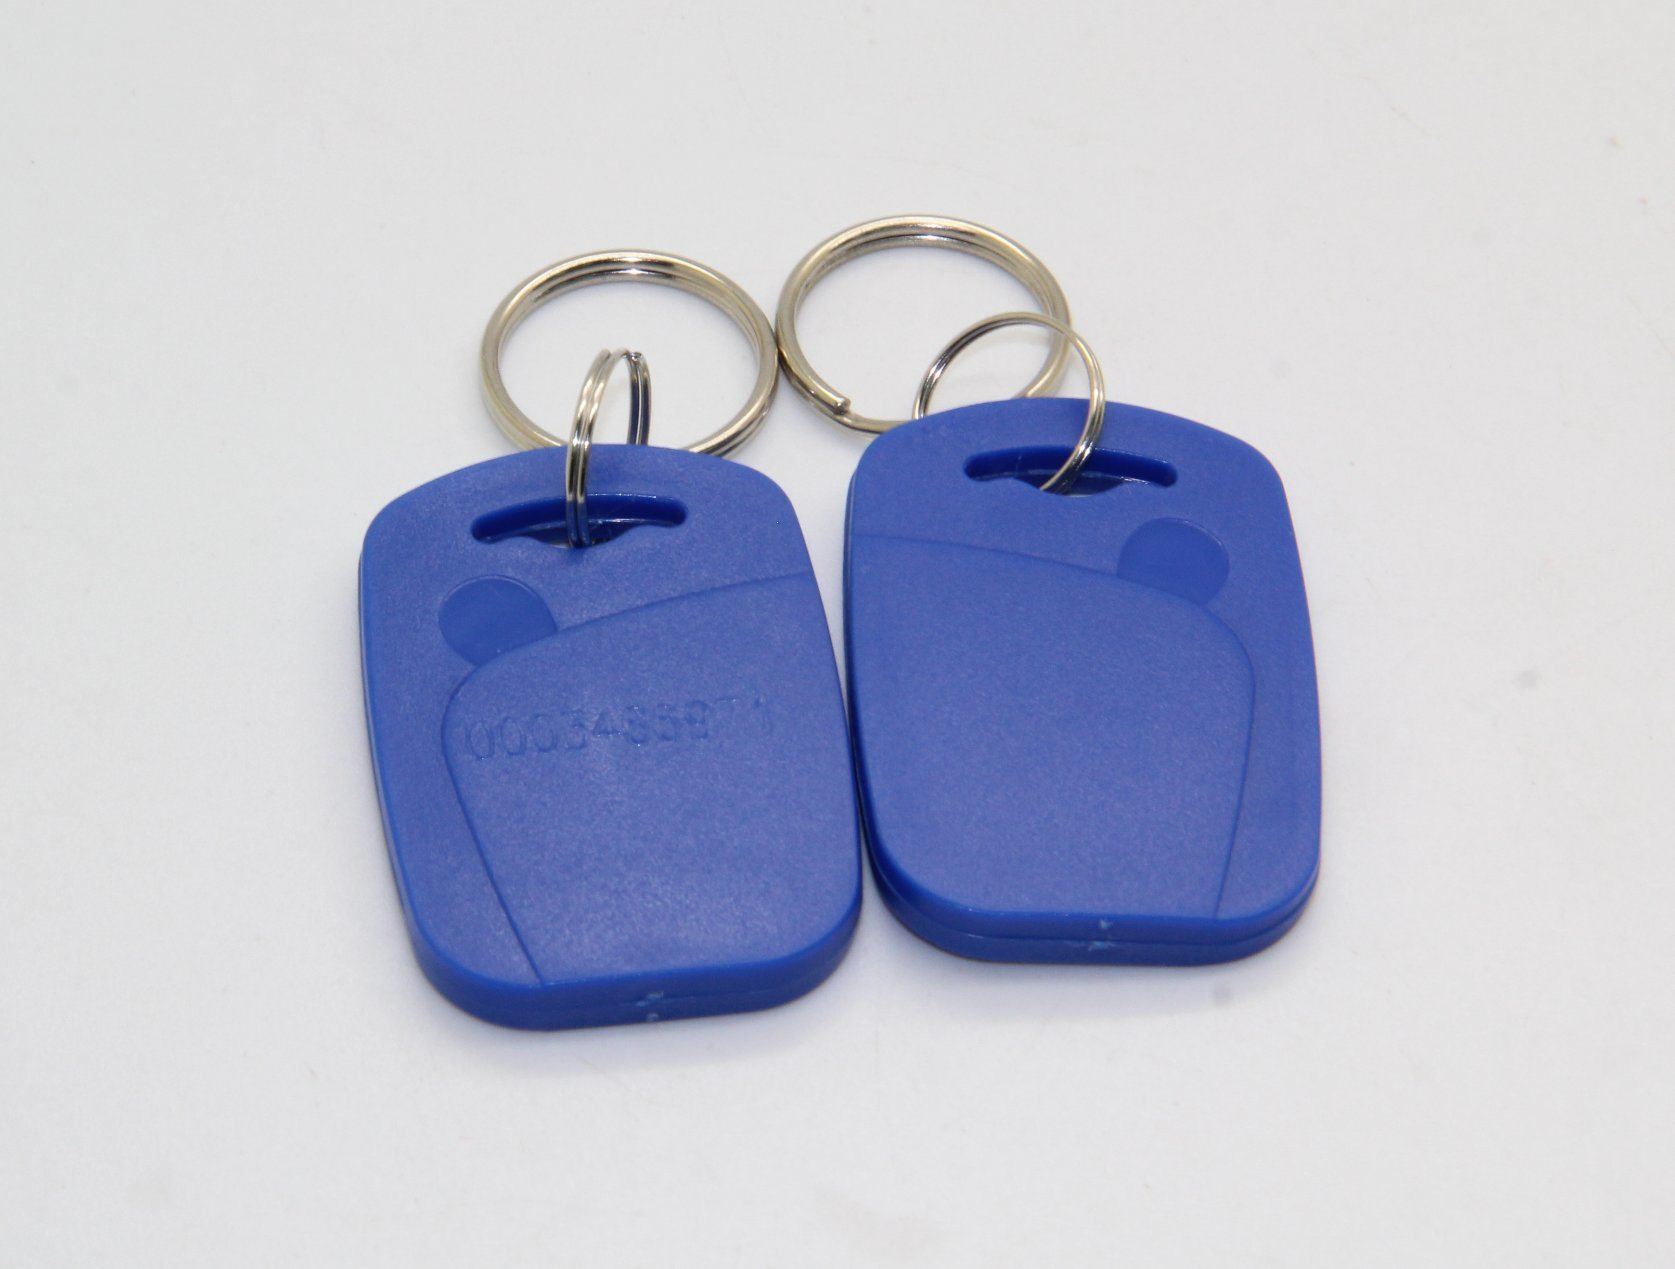 ABS Passive RFID Keyfob/Keychain/RFID Tag/NFC Tag in Access Control System pictures & photos